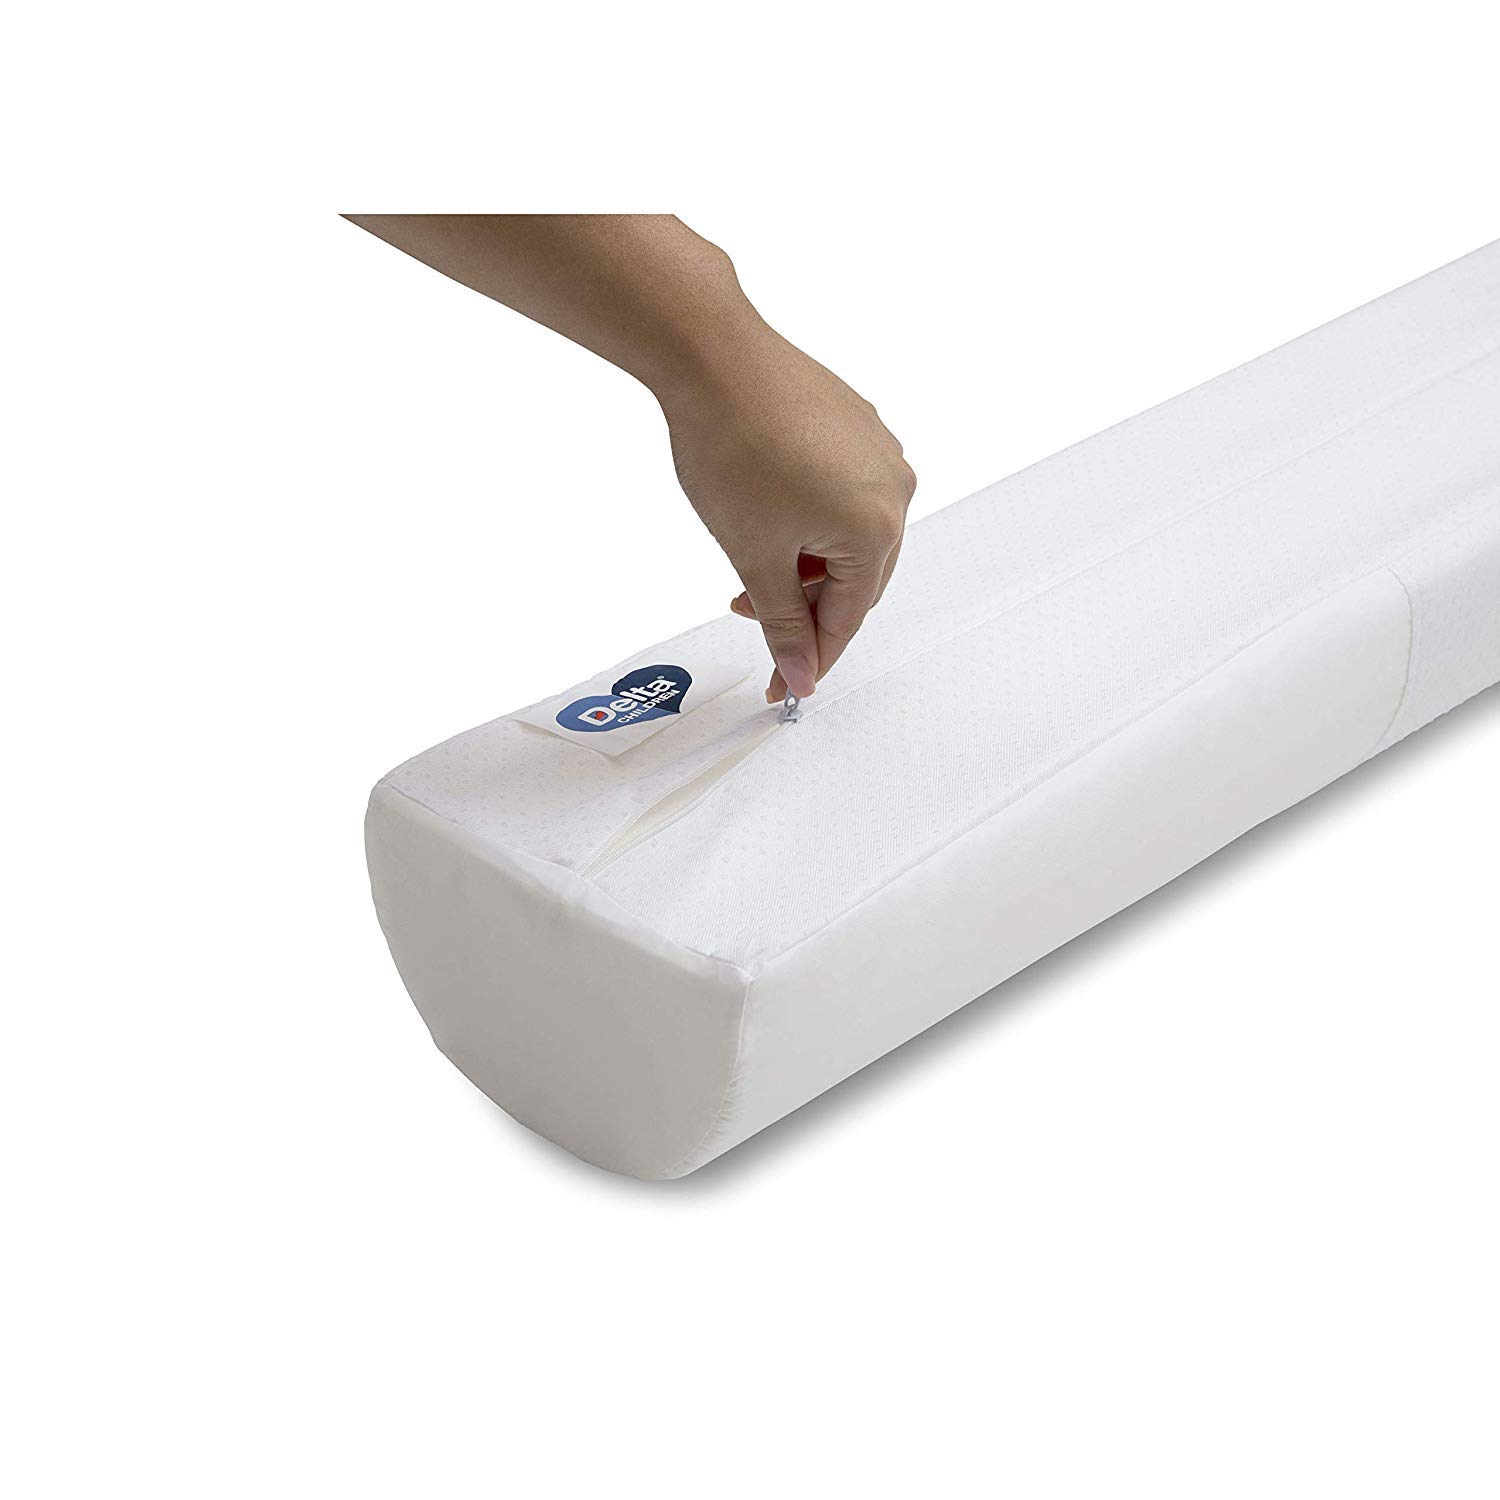 Delta Children Foam Bed Rails/Bumpers with Water-Resistant Covers and Non-Slip Bottoms for Toddlers & Kids - 2 Pack (White) by Delta Children (Image #8)